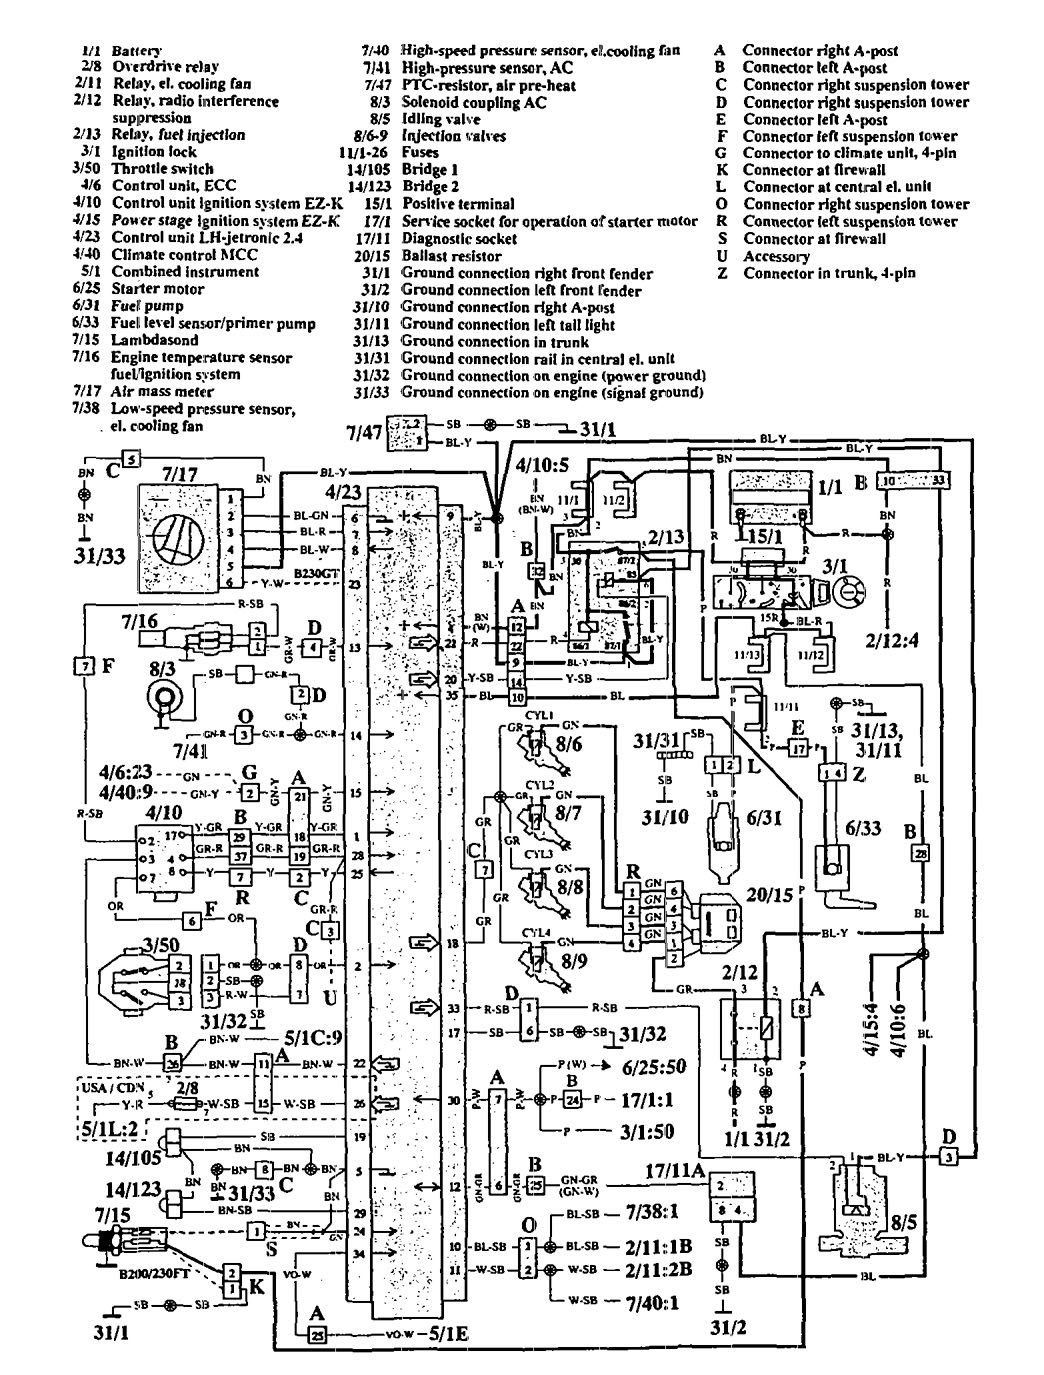 volvo 940 wiring diagram fuel controls v2 2 1992 hu 613 wiring diagram boat wiring diagram \u2022 wiring diagrams j  at readyjetset.co